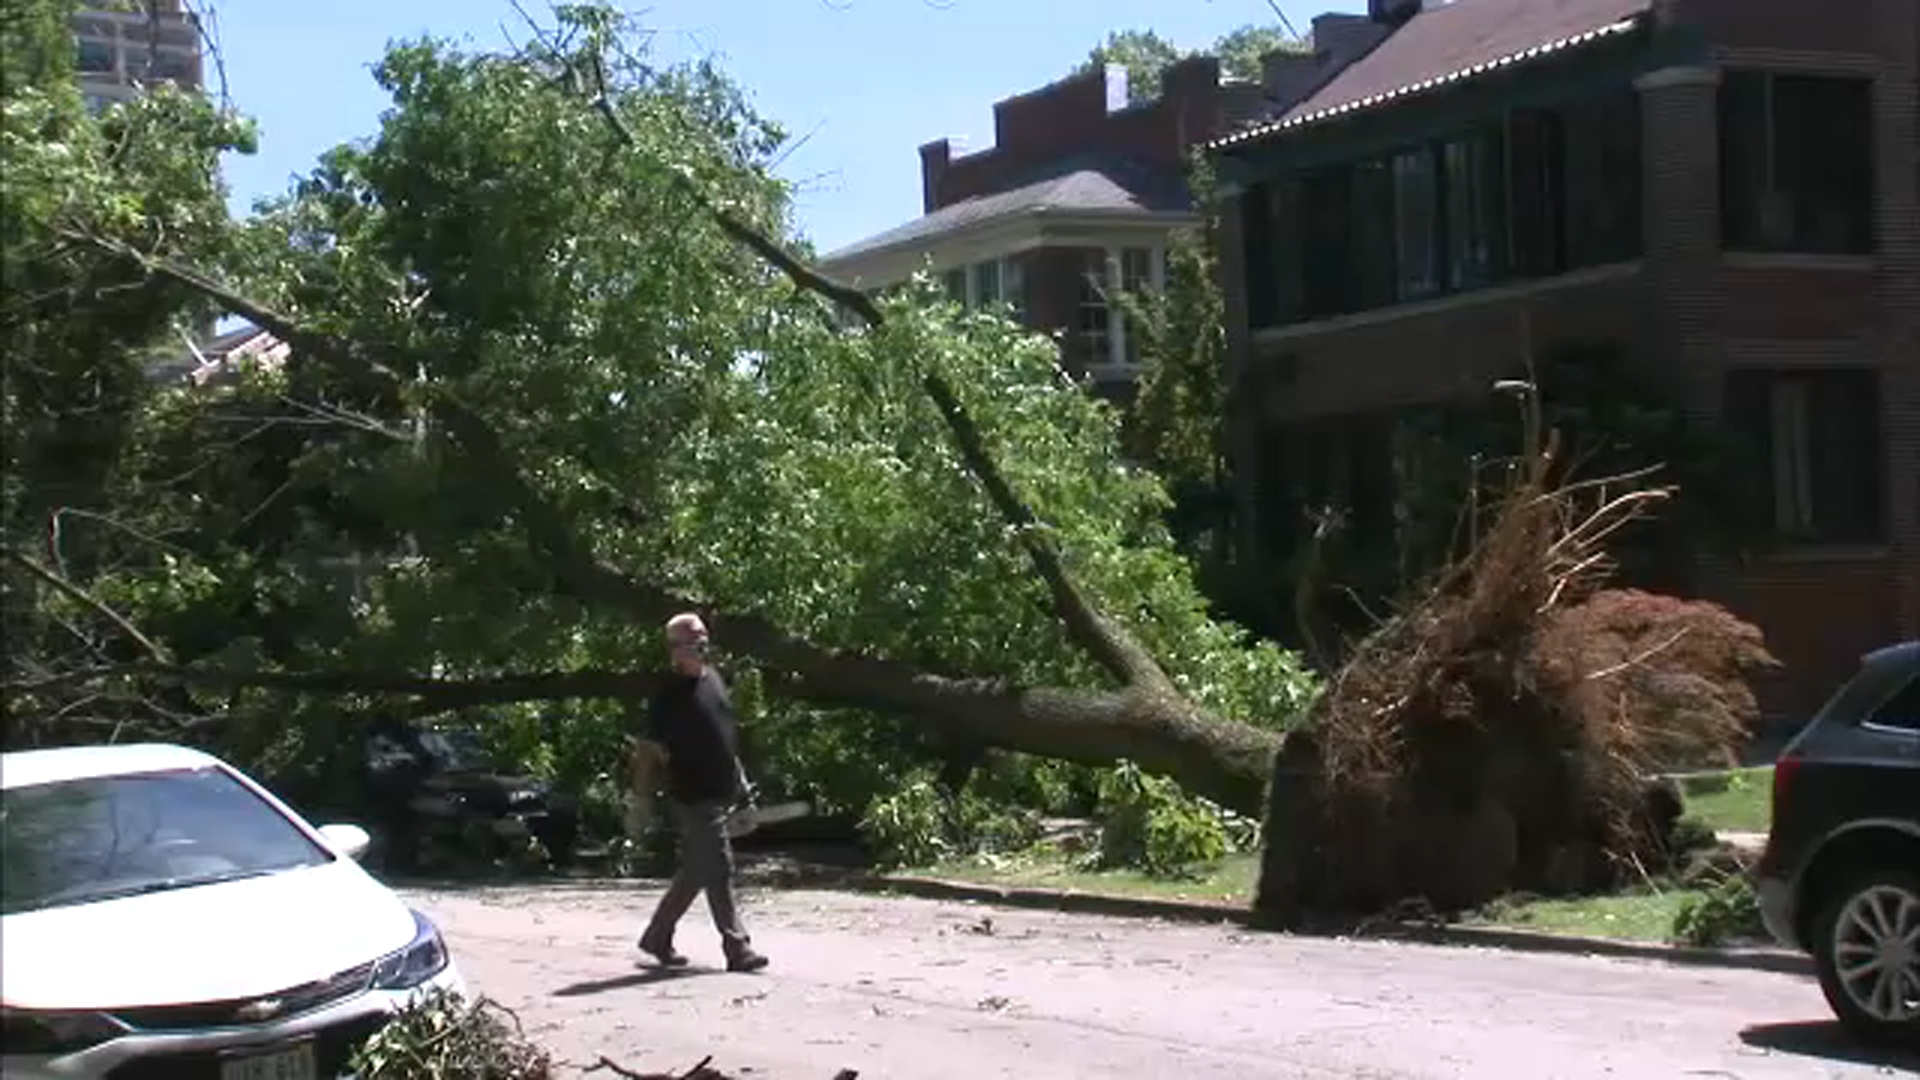 illinois tornado tornadoes confirmed in chicago villa park lombard wheaton oak forest plainfield ottawa during derecho nws says abc7 chicago illinois tornado tornadoes confirmed